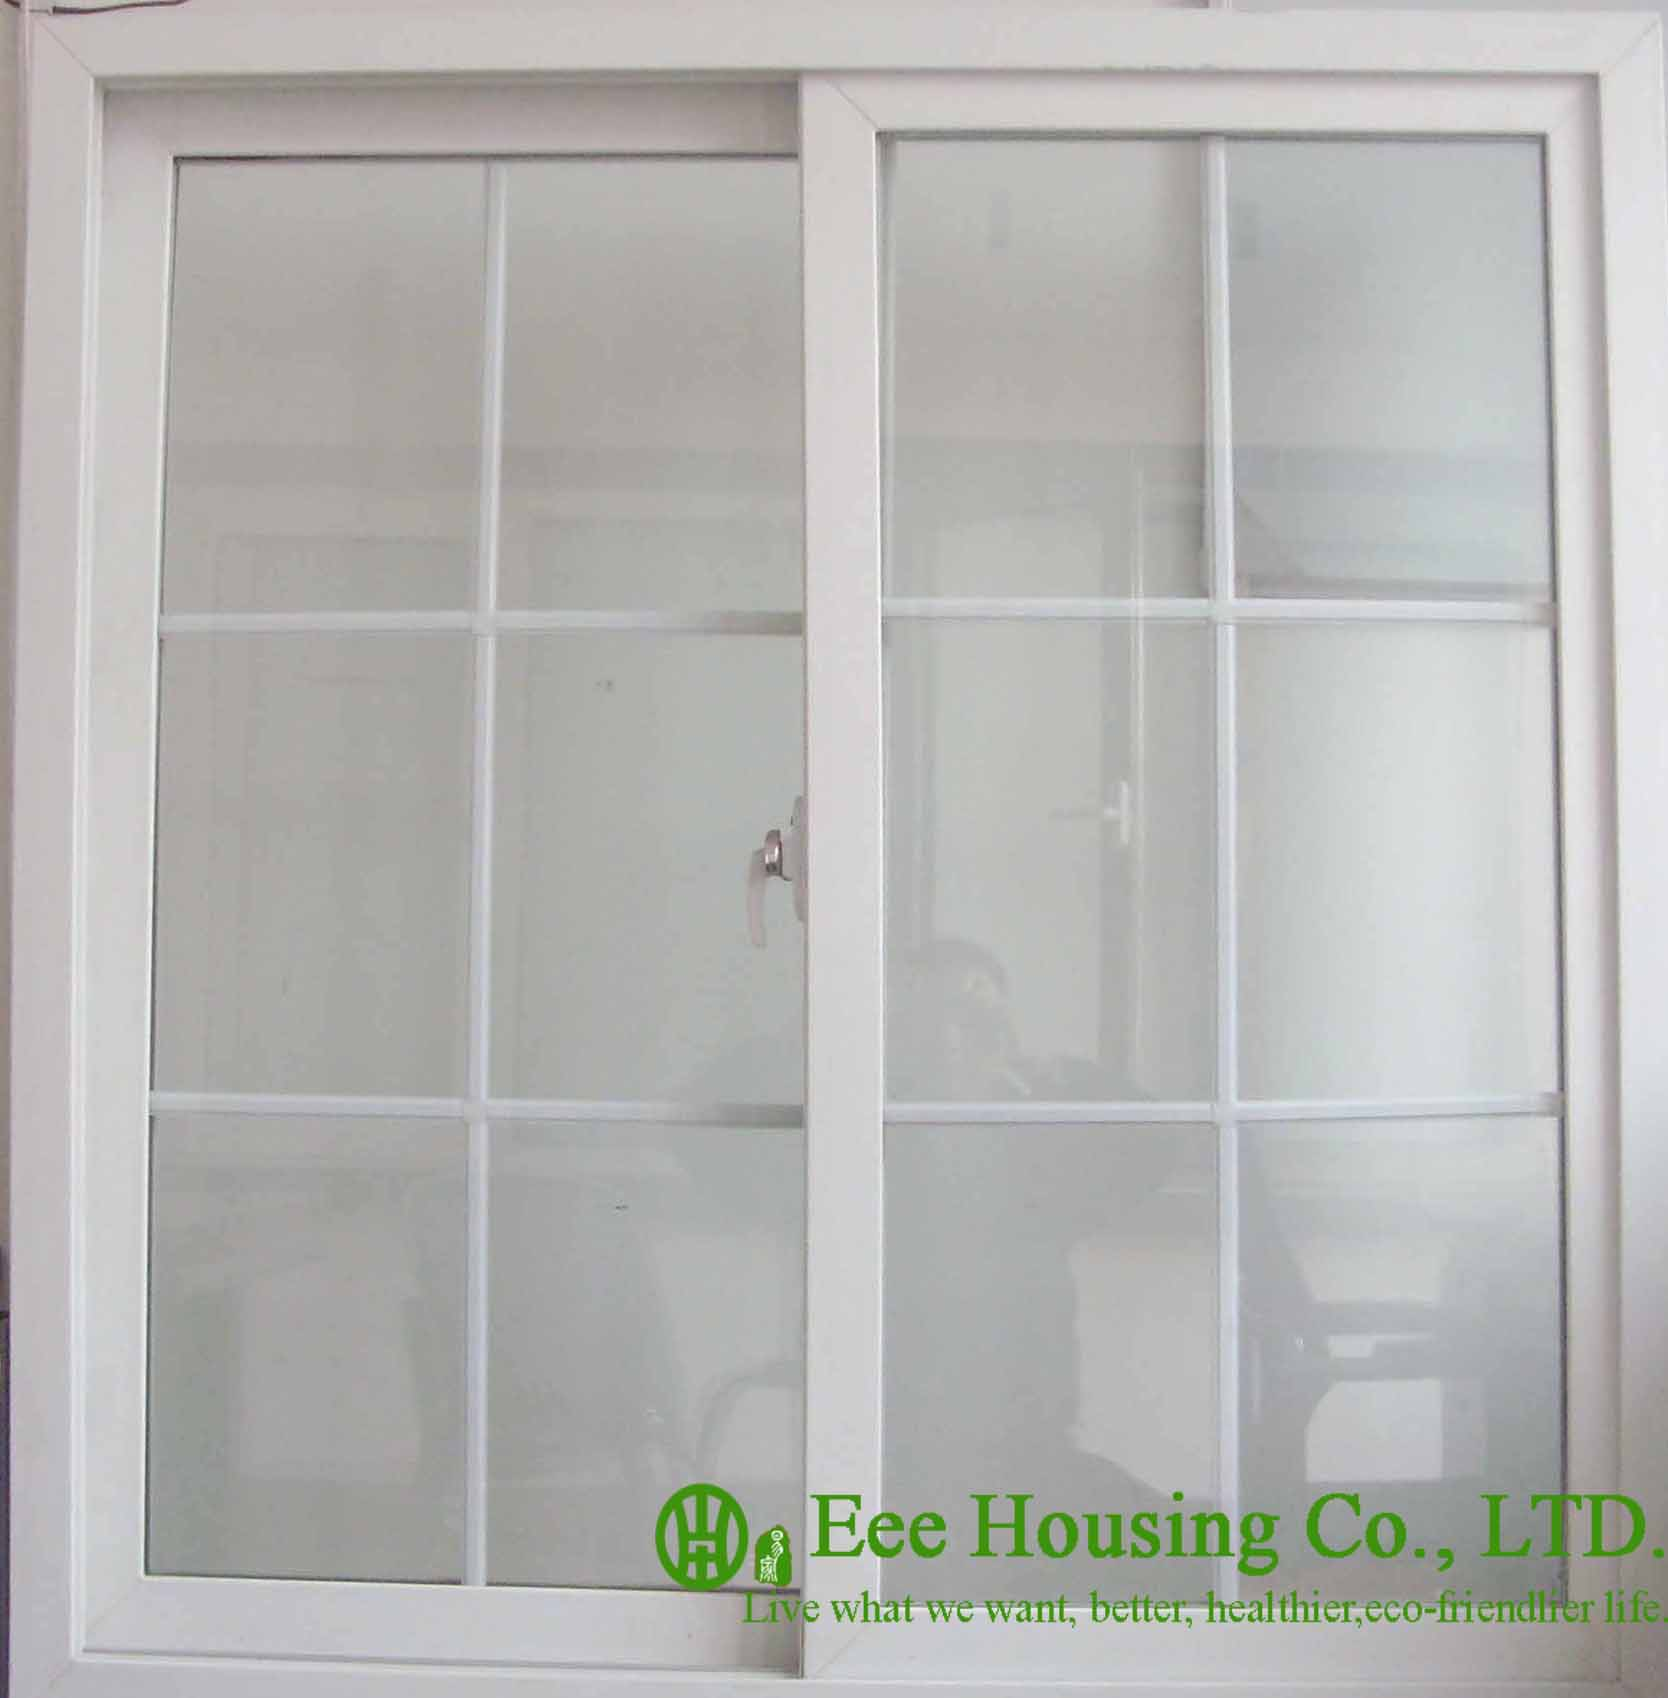 Aliexpress buy soundproof insulated glass upvc sliding aliexpress buy soundproof insulated glass upvc sliding windows for bedroom latest design vinyl sliding window with screens from reliable sliding eventelaan Choice Image